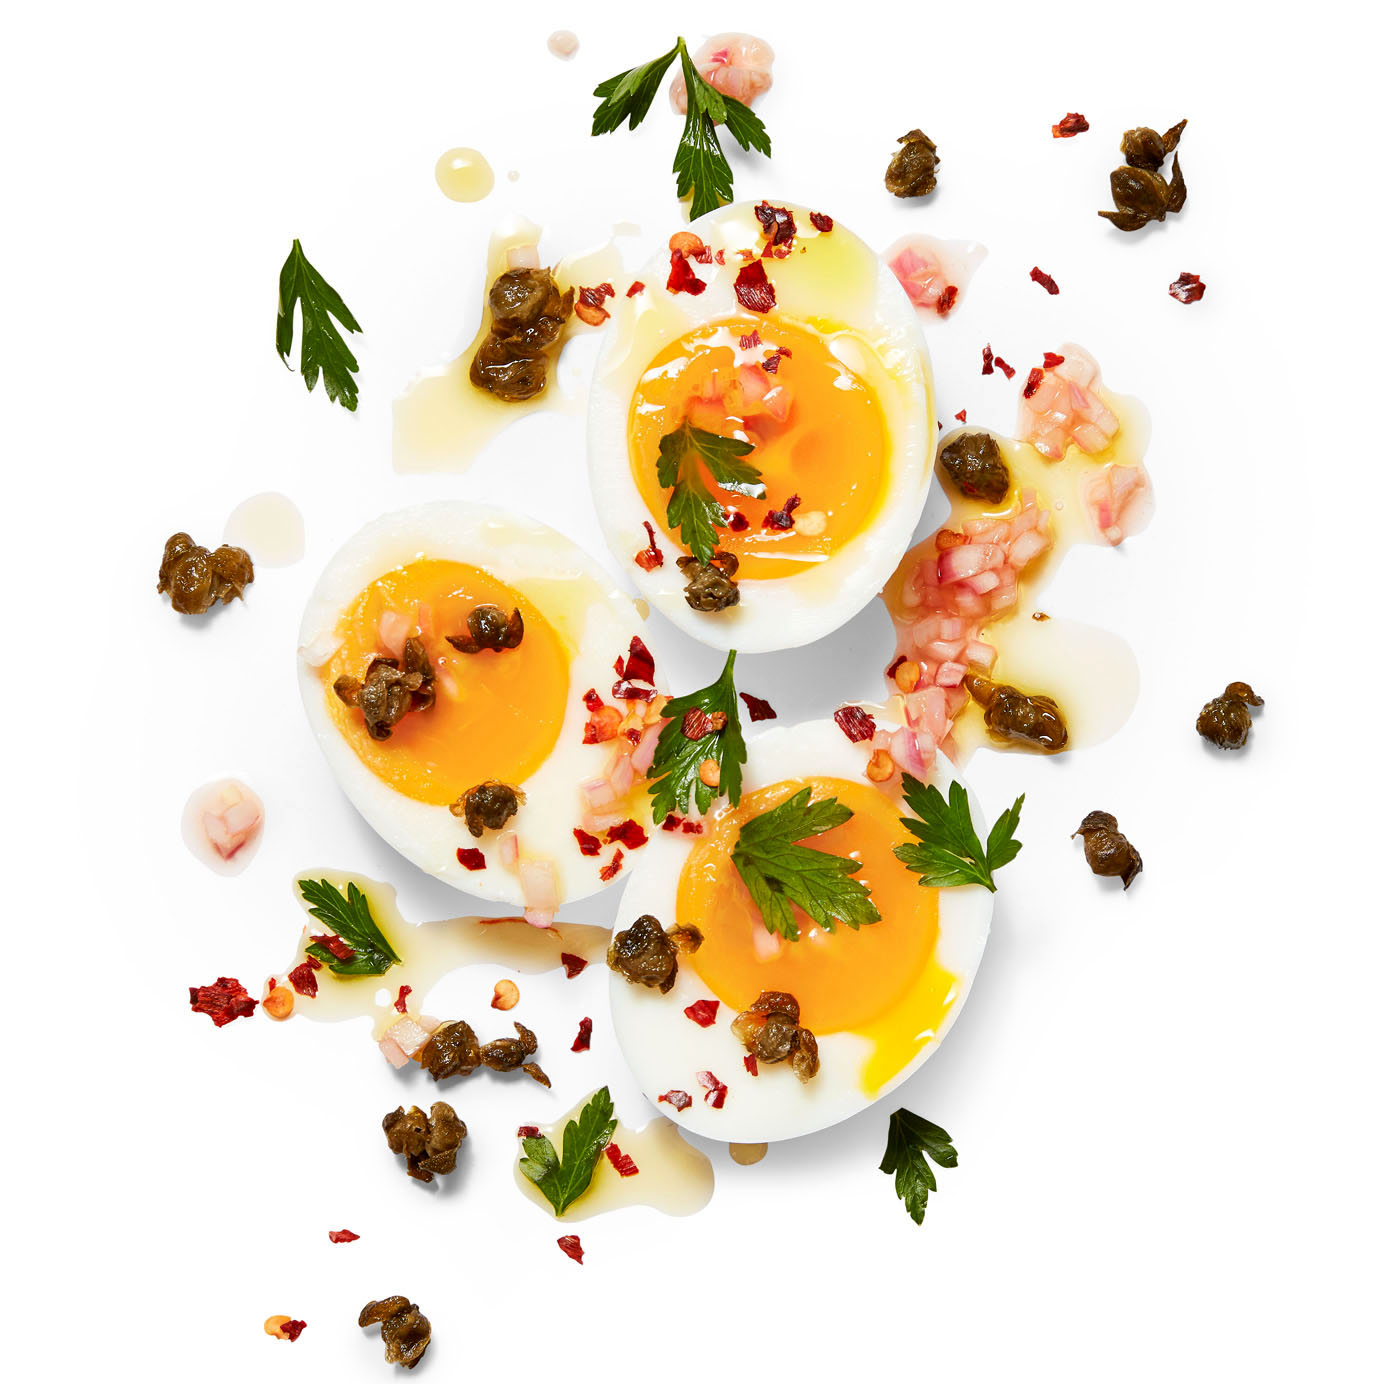 jammy eggs with fried capers